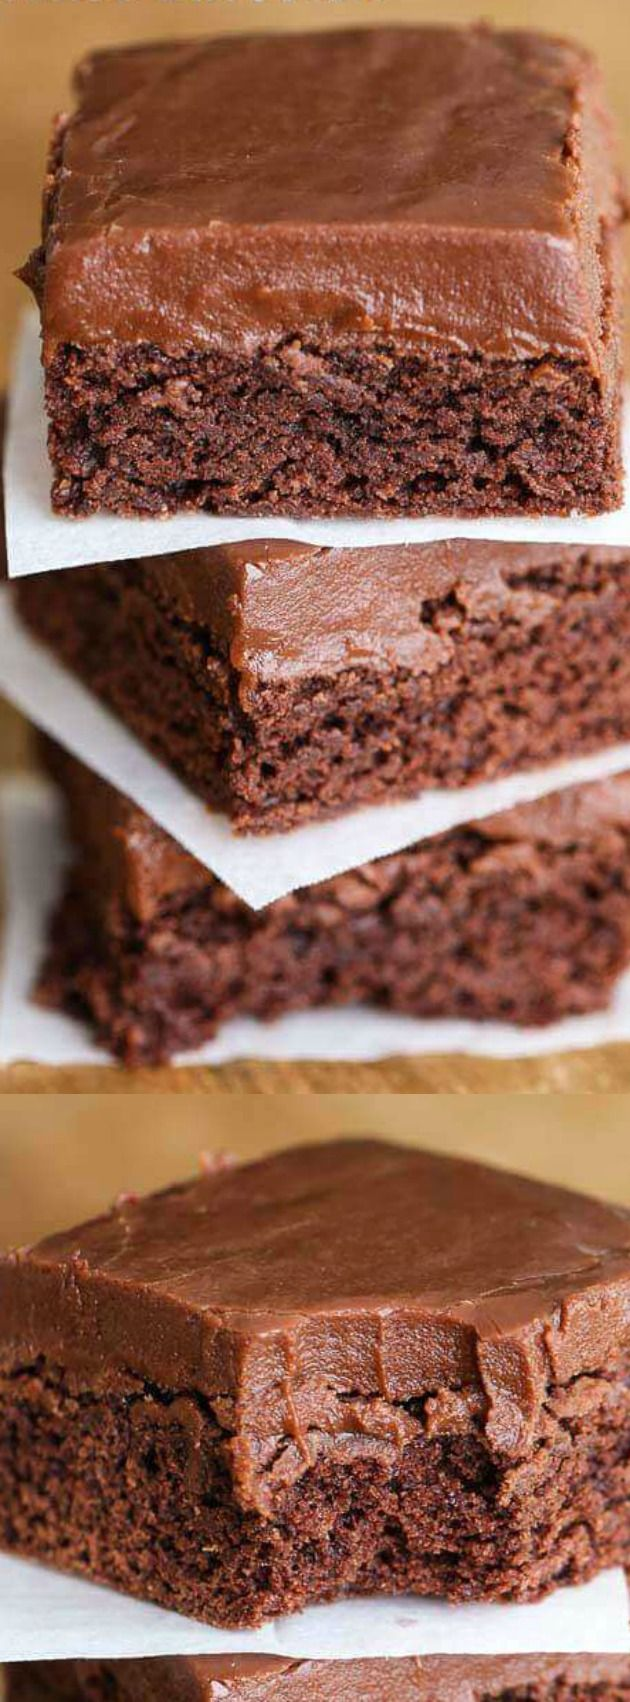 Best 25+ Chocolate frosting recipes ideas on Pinterest | Chocolate ...